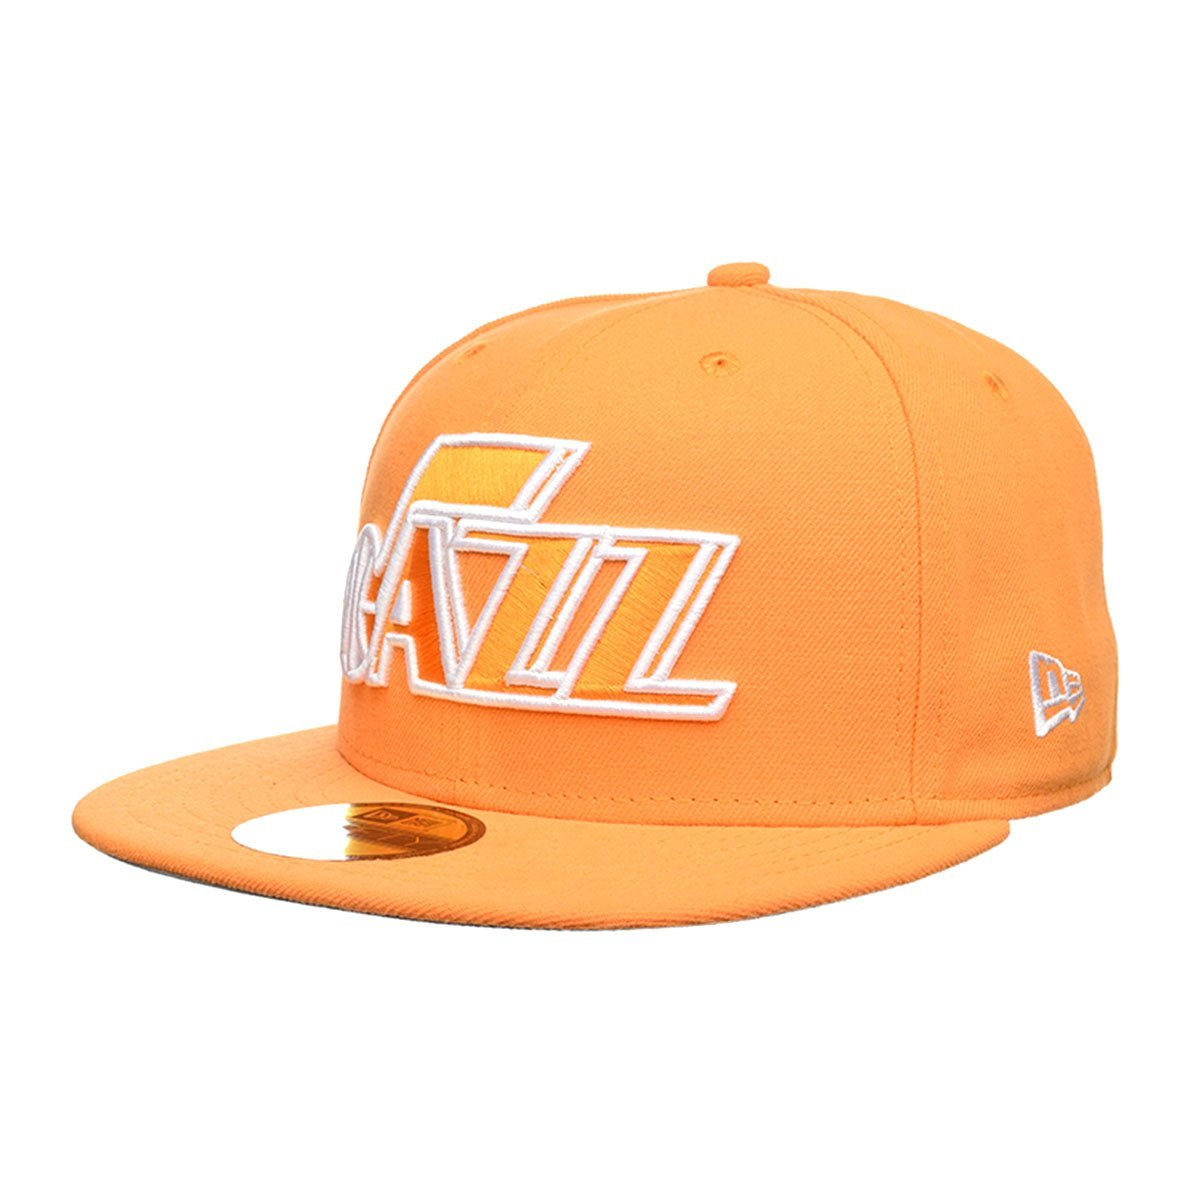 Buy UTAH JAZZ NEW ERA 59Fifty Hat NBA Size 7 1 4 Black Gray  gt NEW ... 9c2dce72865